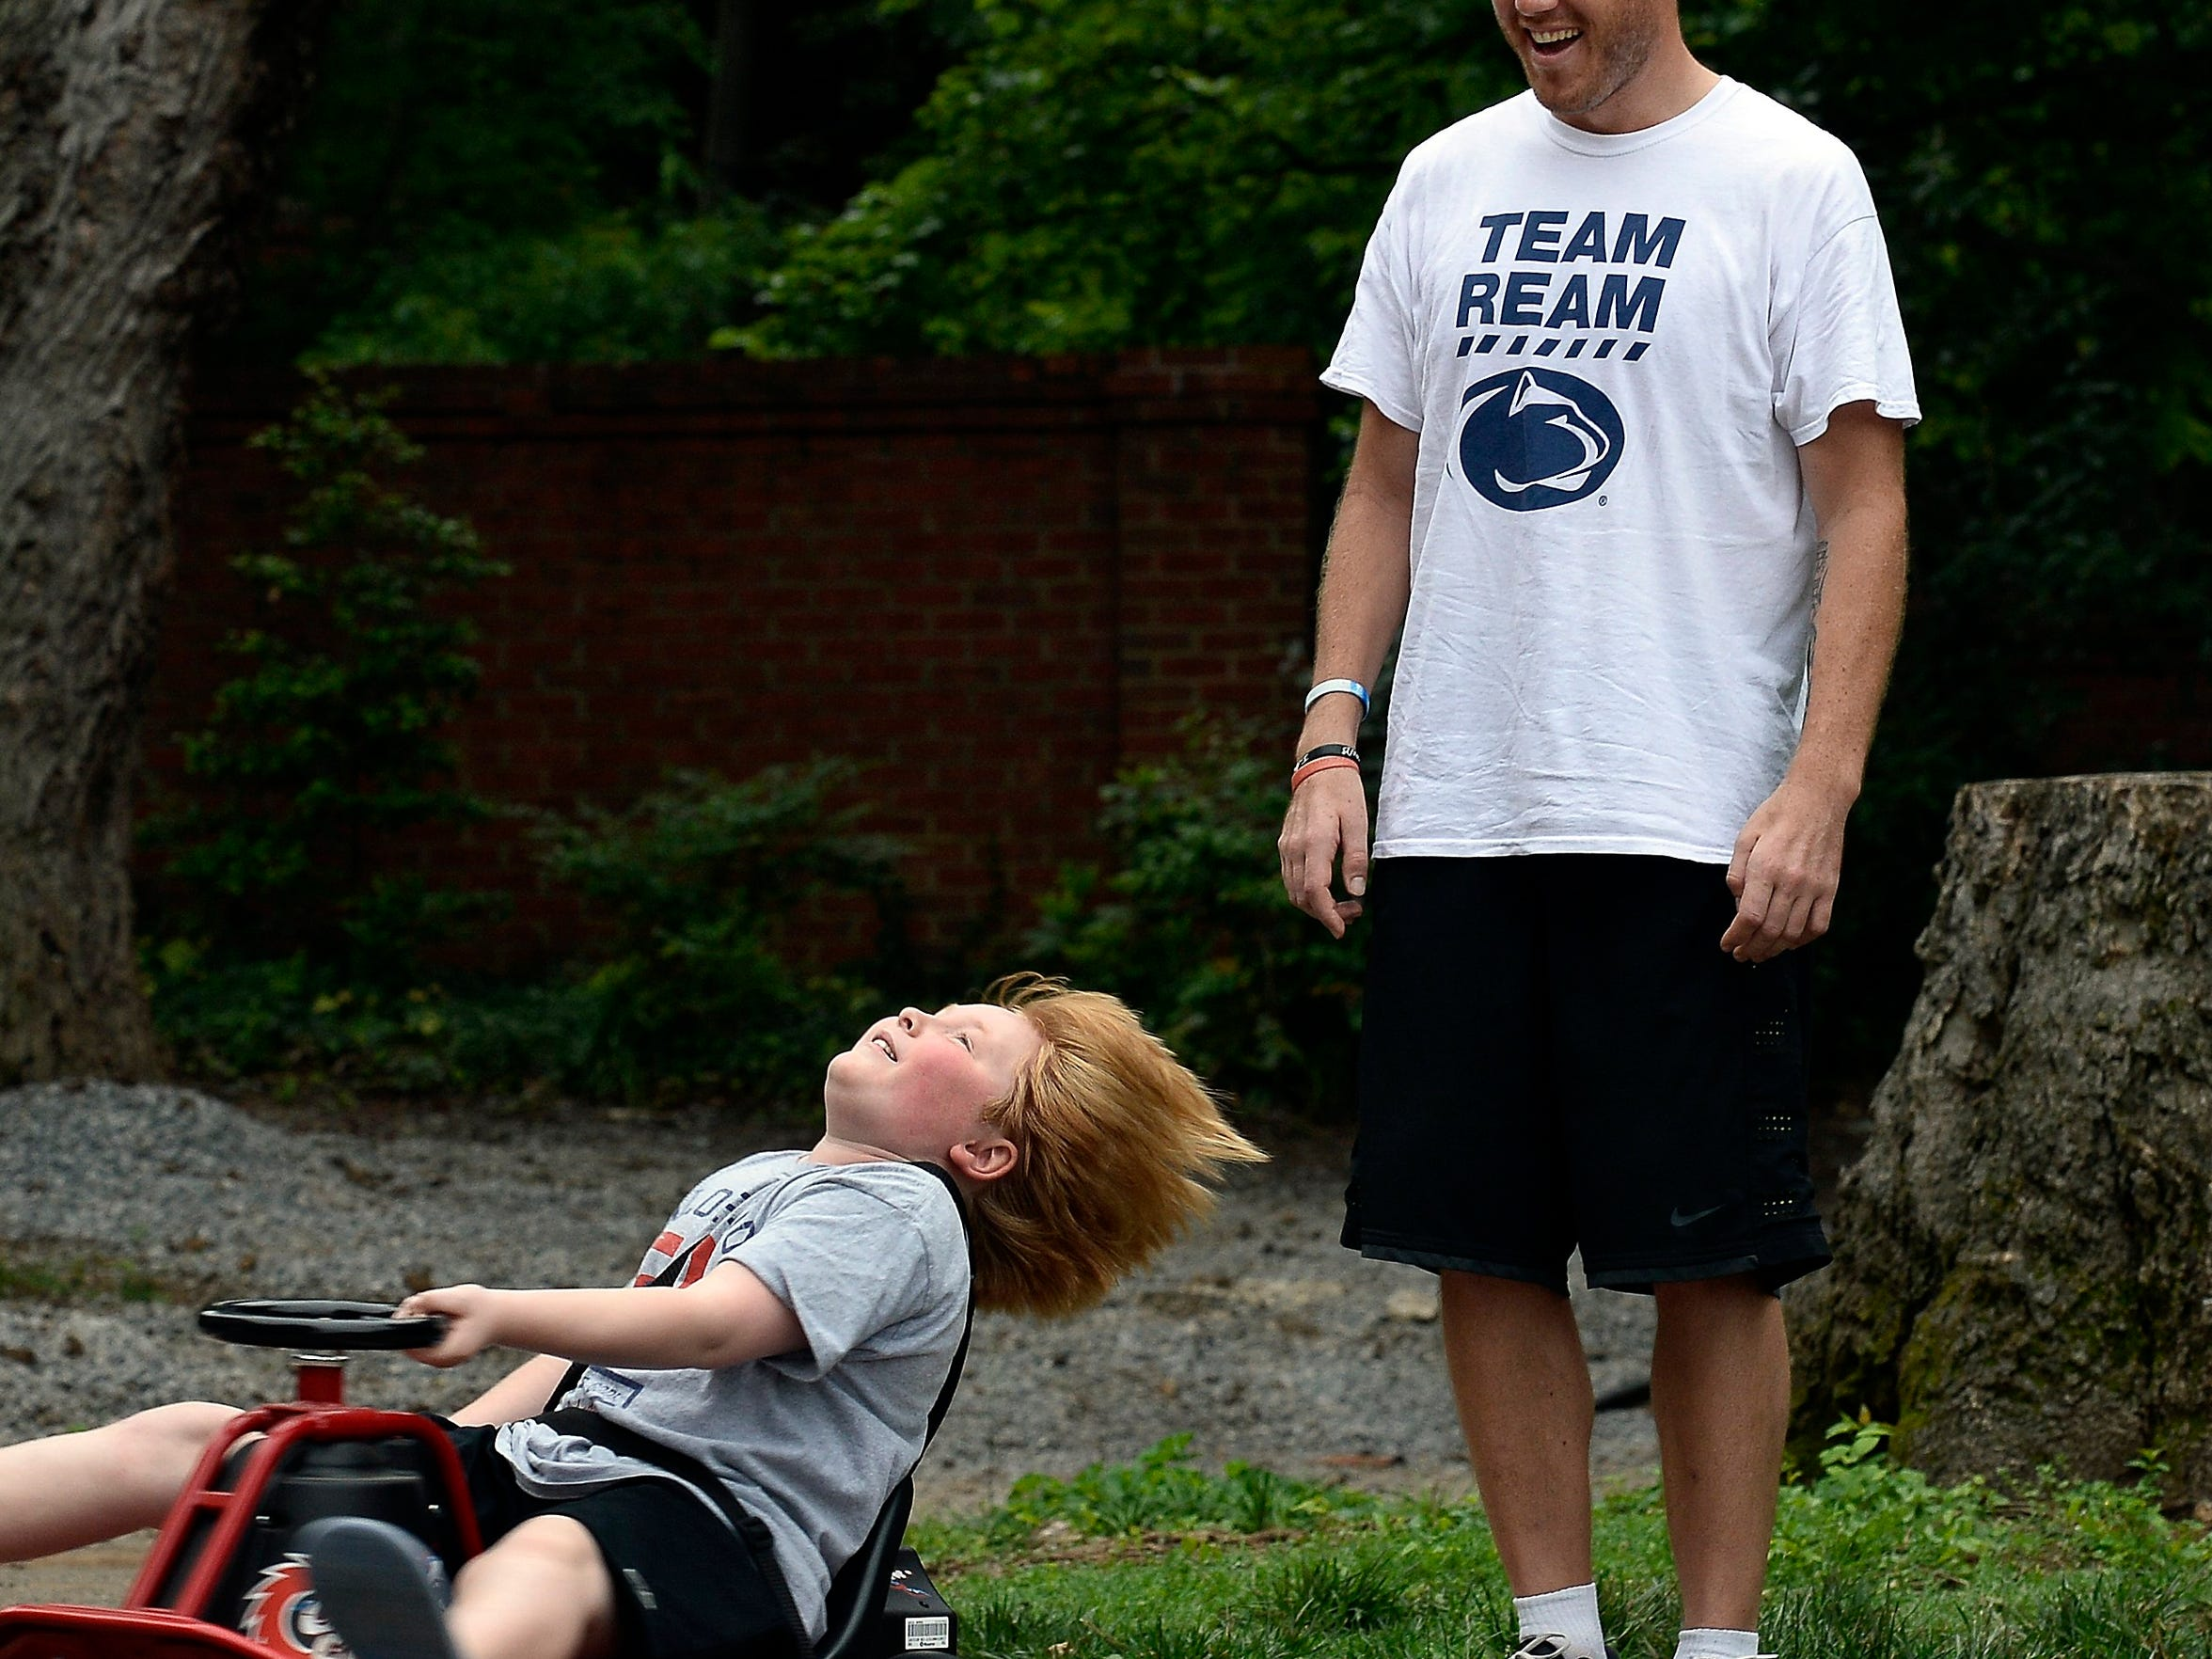 Britton Busbee, 9, shows Tim Shaw how to spin on a